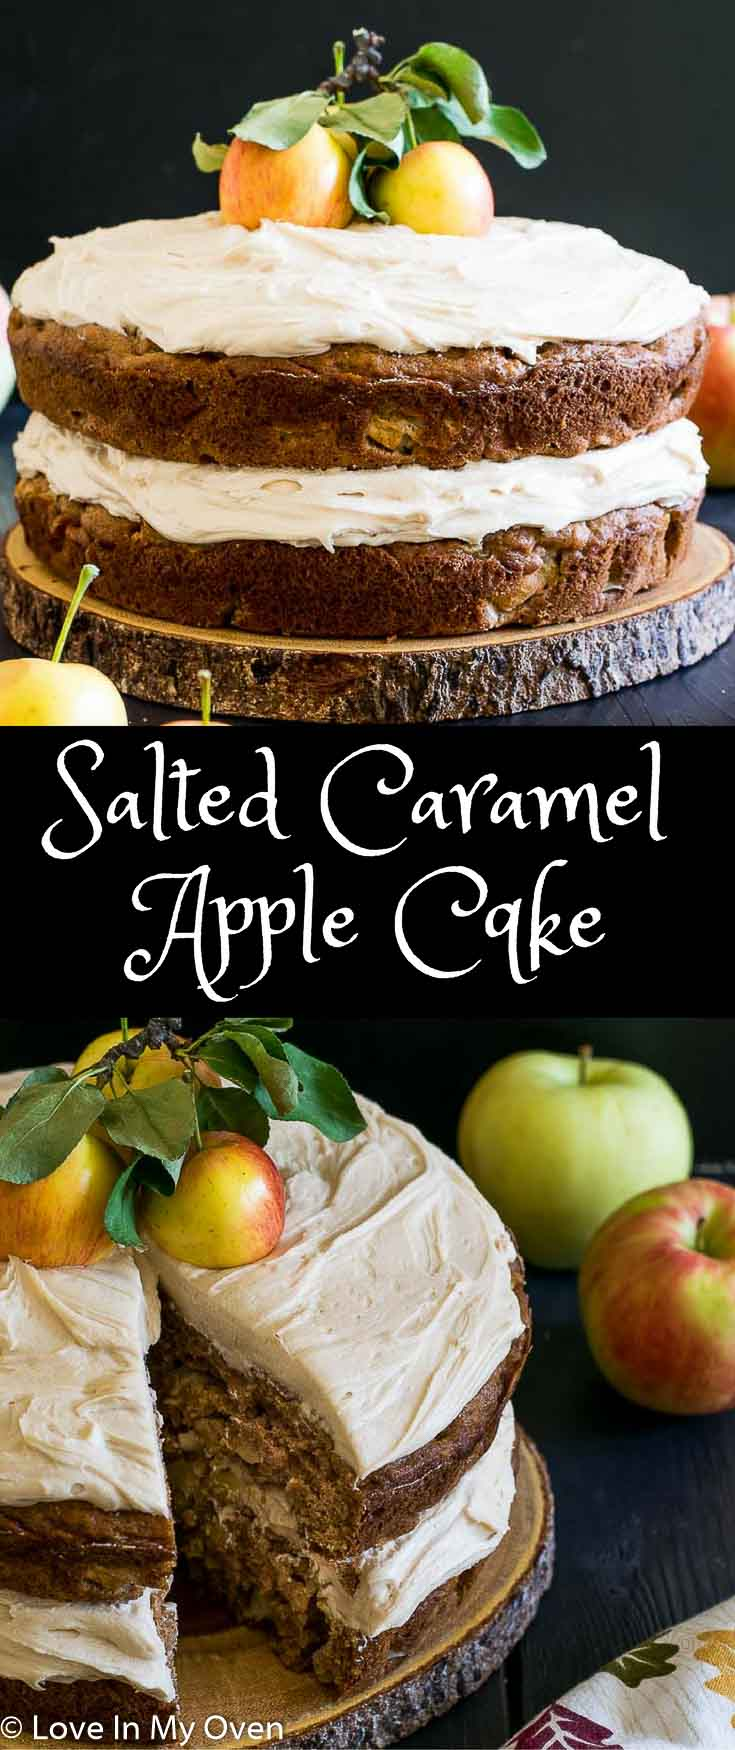 Treat your guests to this lightly spiced double layer cake with chunks of juicy apple and mounds of salted caramel buttercream - your next favourite fall dessert!